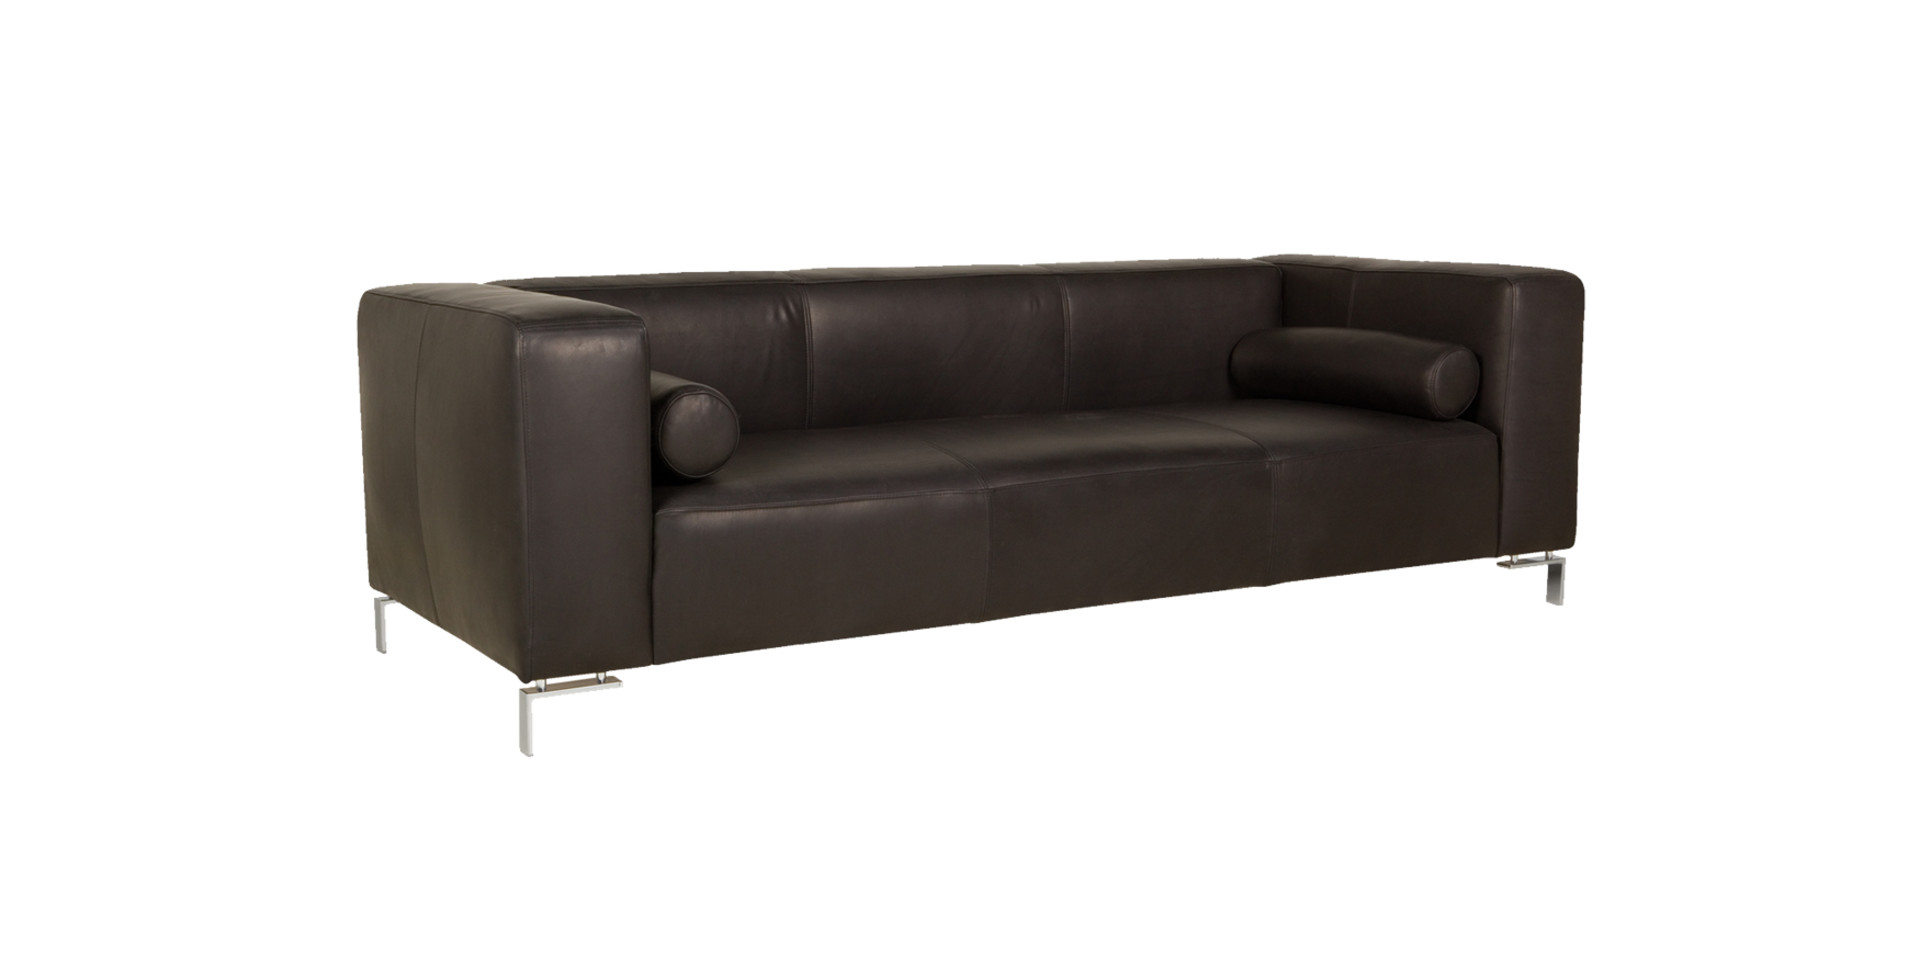 sits-bellagio-canape-3seater_aniline_black_2